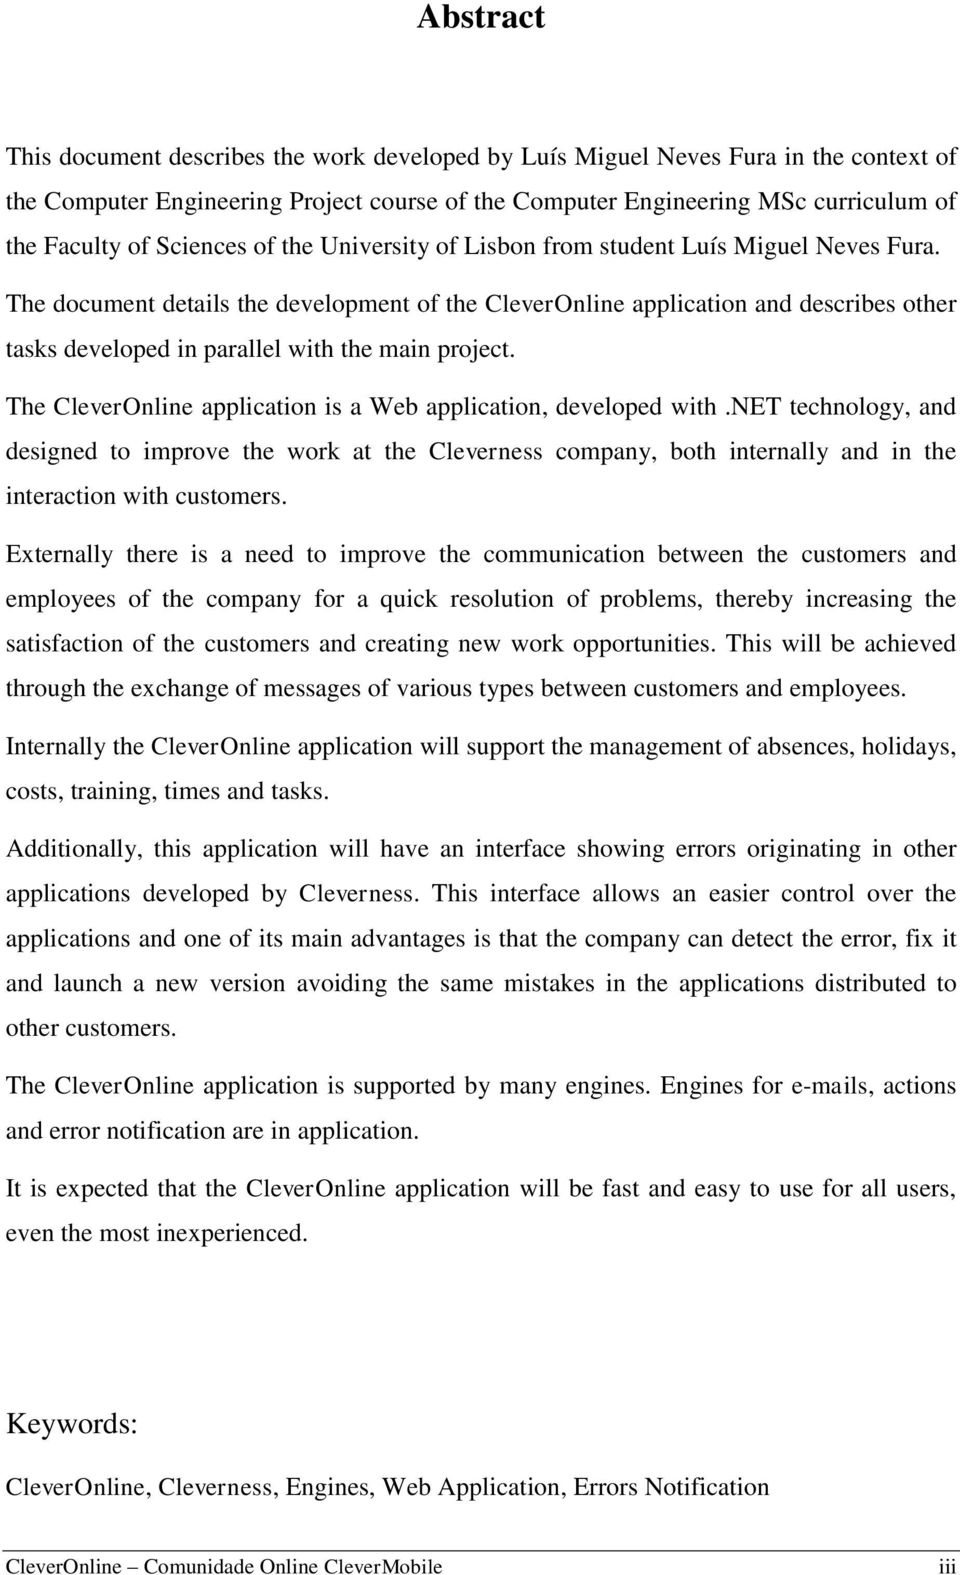 The document details the development of the CleverOnline application and describes other tasks developed in parallel with the main project.